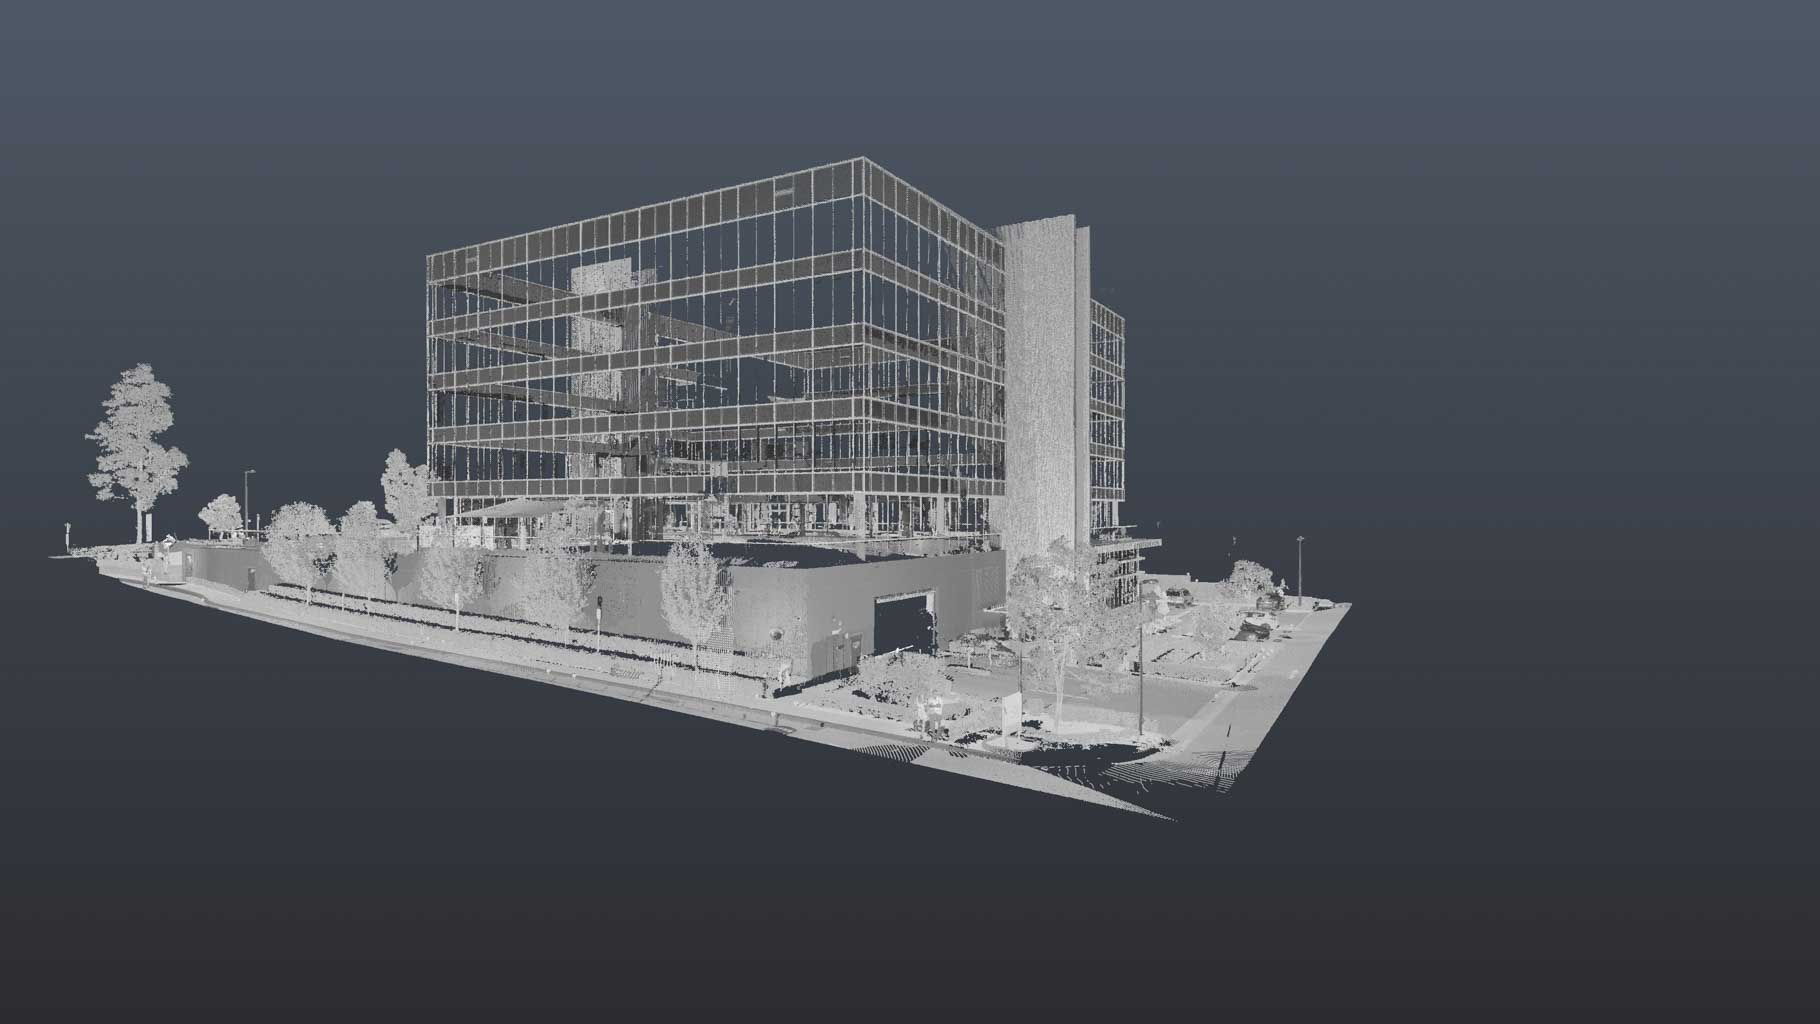 A SAMPLE OF A 3D SCAN FOR AN EXTERNAL ELEVATION DRAWING BY REALSERVE OF A PROPERTY